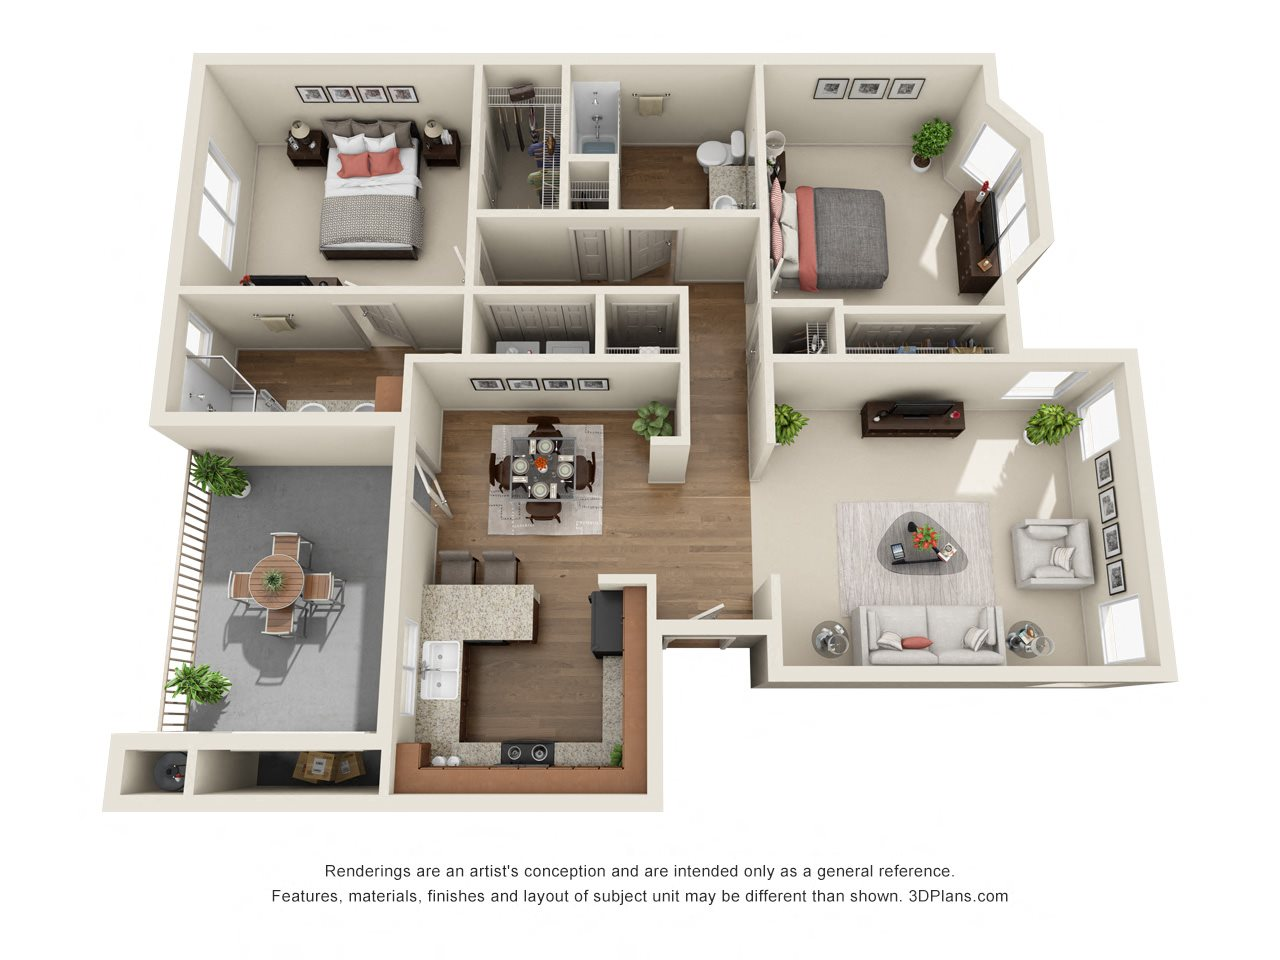 2 Bedroom, 2 Bath, Downstairs Floor Plan 3